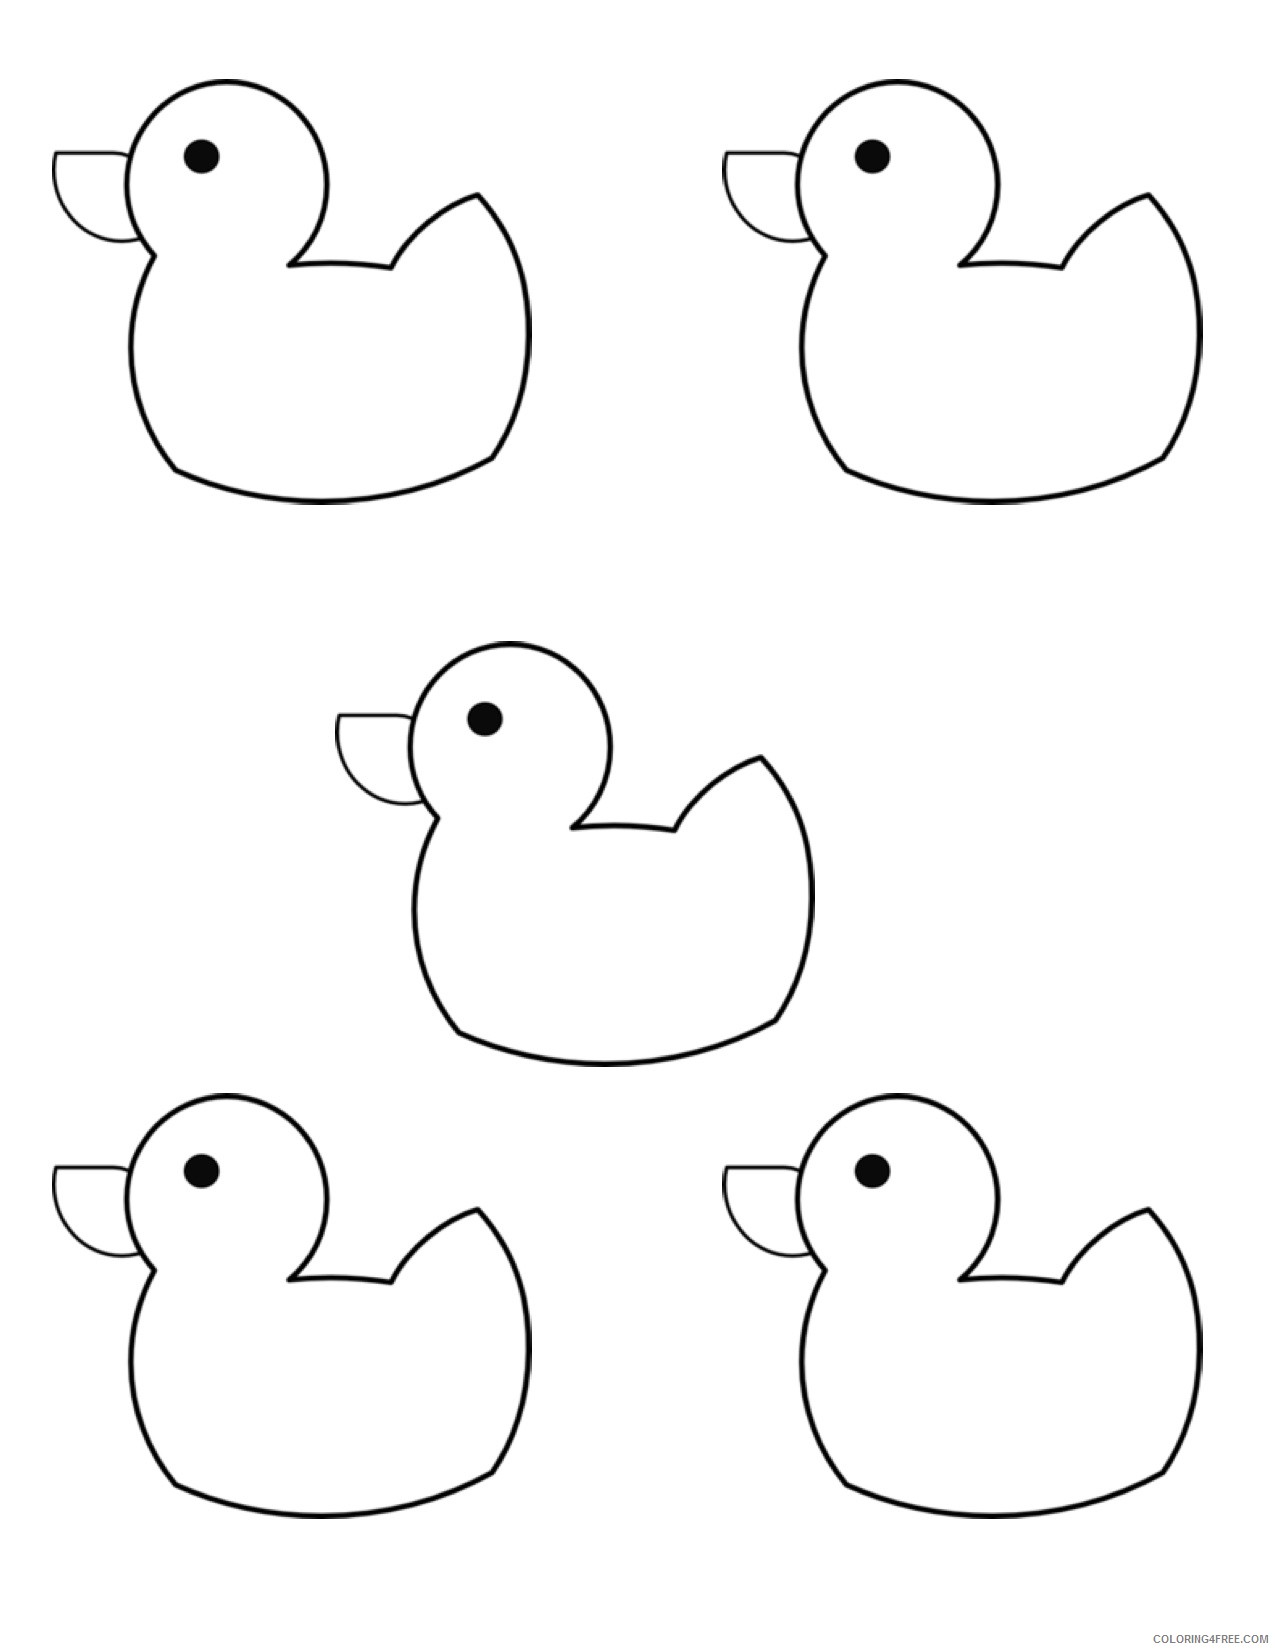 Black and White Rubber Duck Coloring Pages 10 little rubber ducks kindergarten Printable Coloring4free